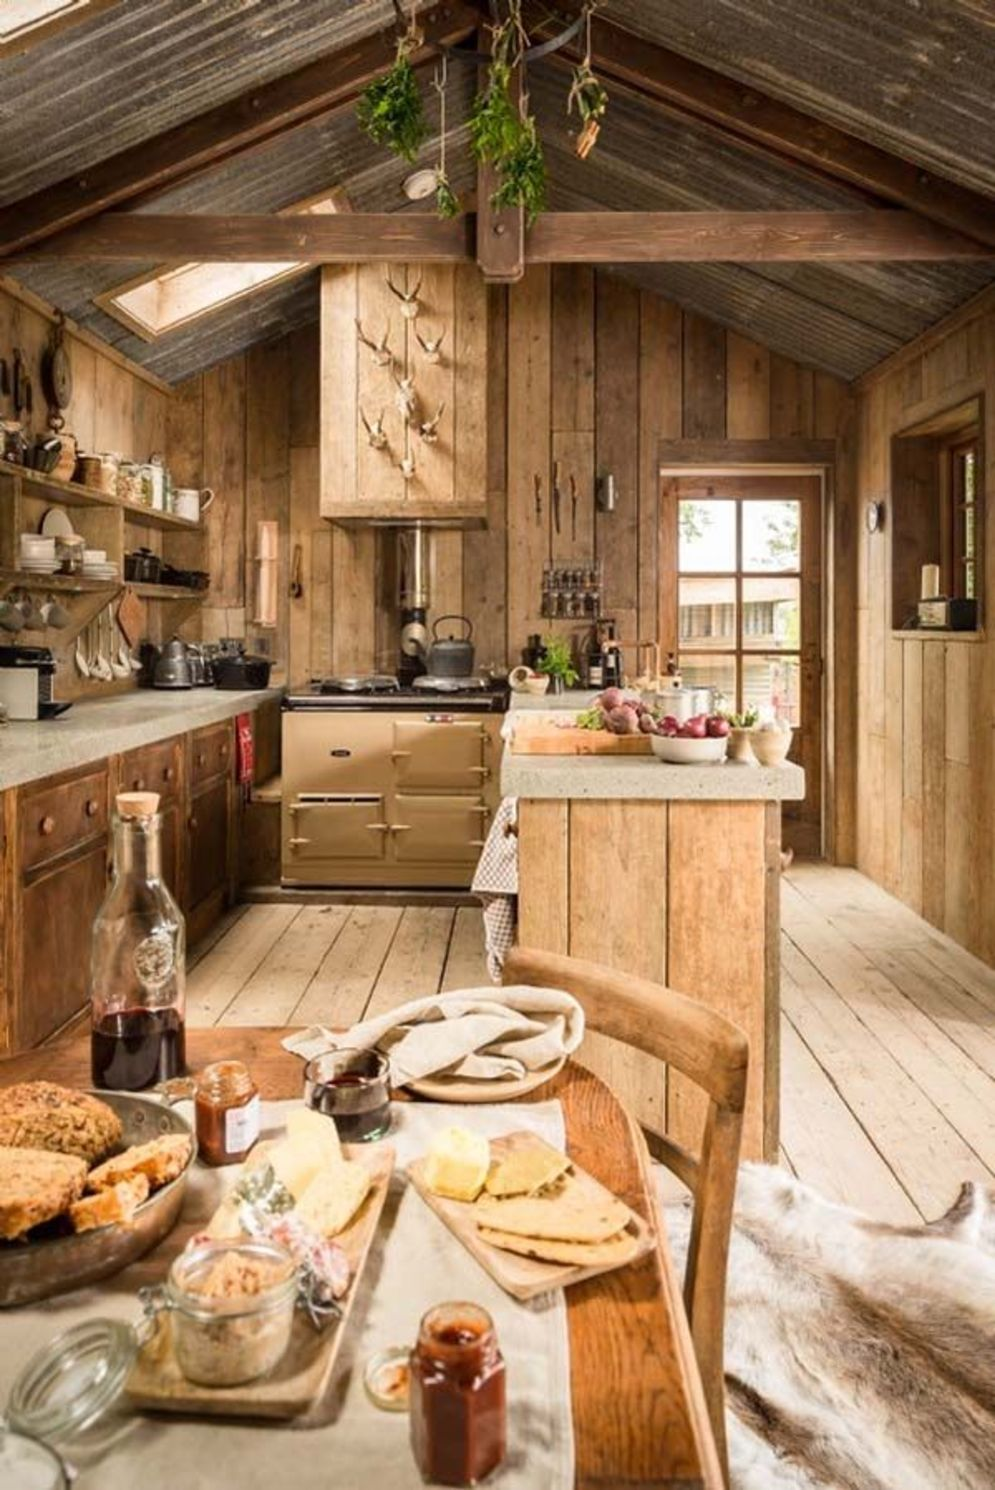 Rustic cabin kitchen designs showing warm wooden structure in earthy natural palettes Image 10